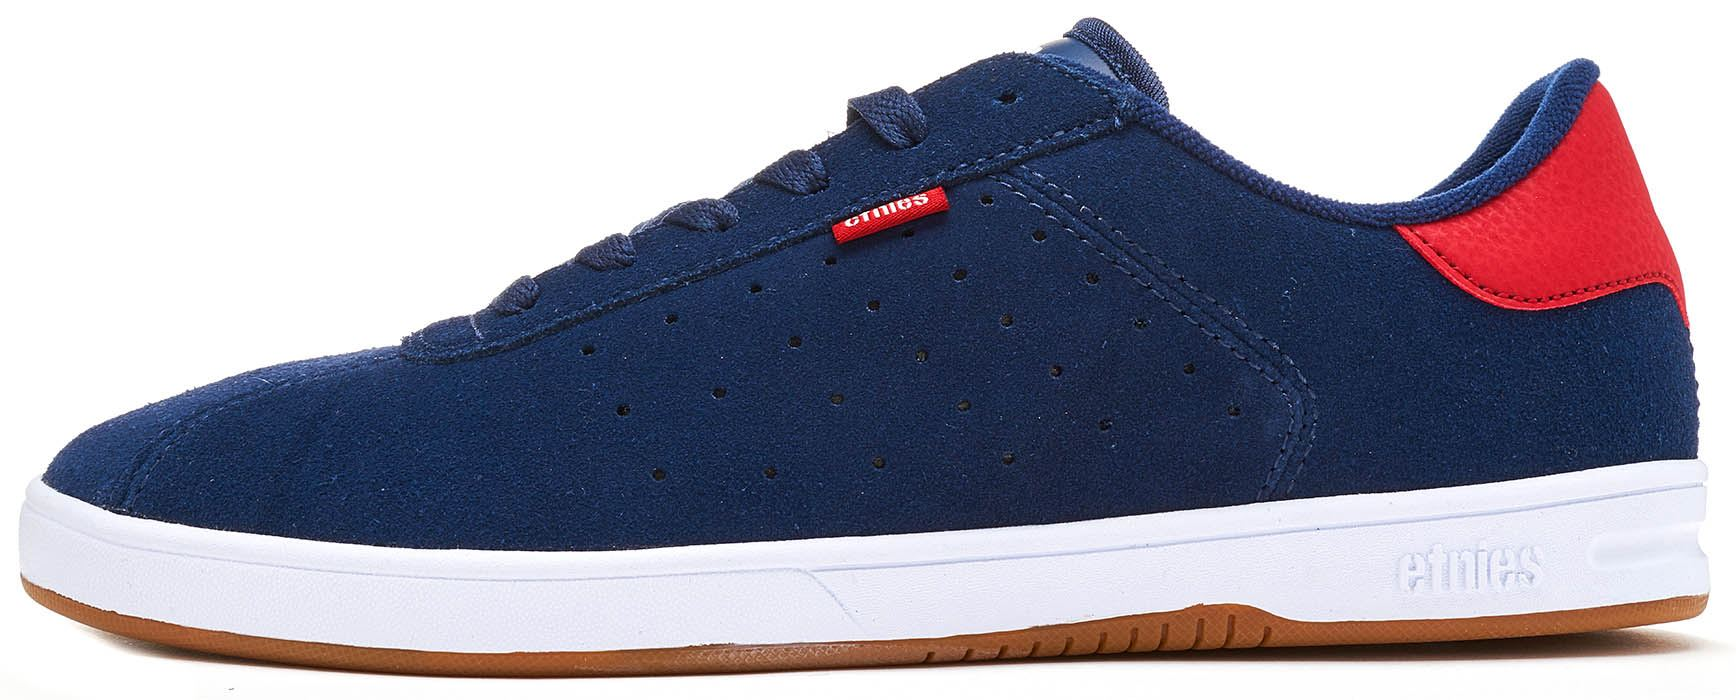 0ffe099ef8 Details about Etnies The Scam Suede Vintage Skate Trainers in Navy Blue &  Red 4101000462 465